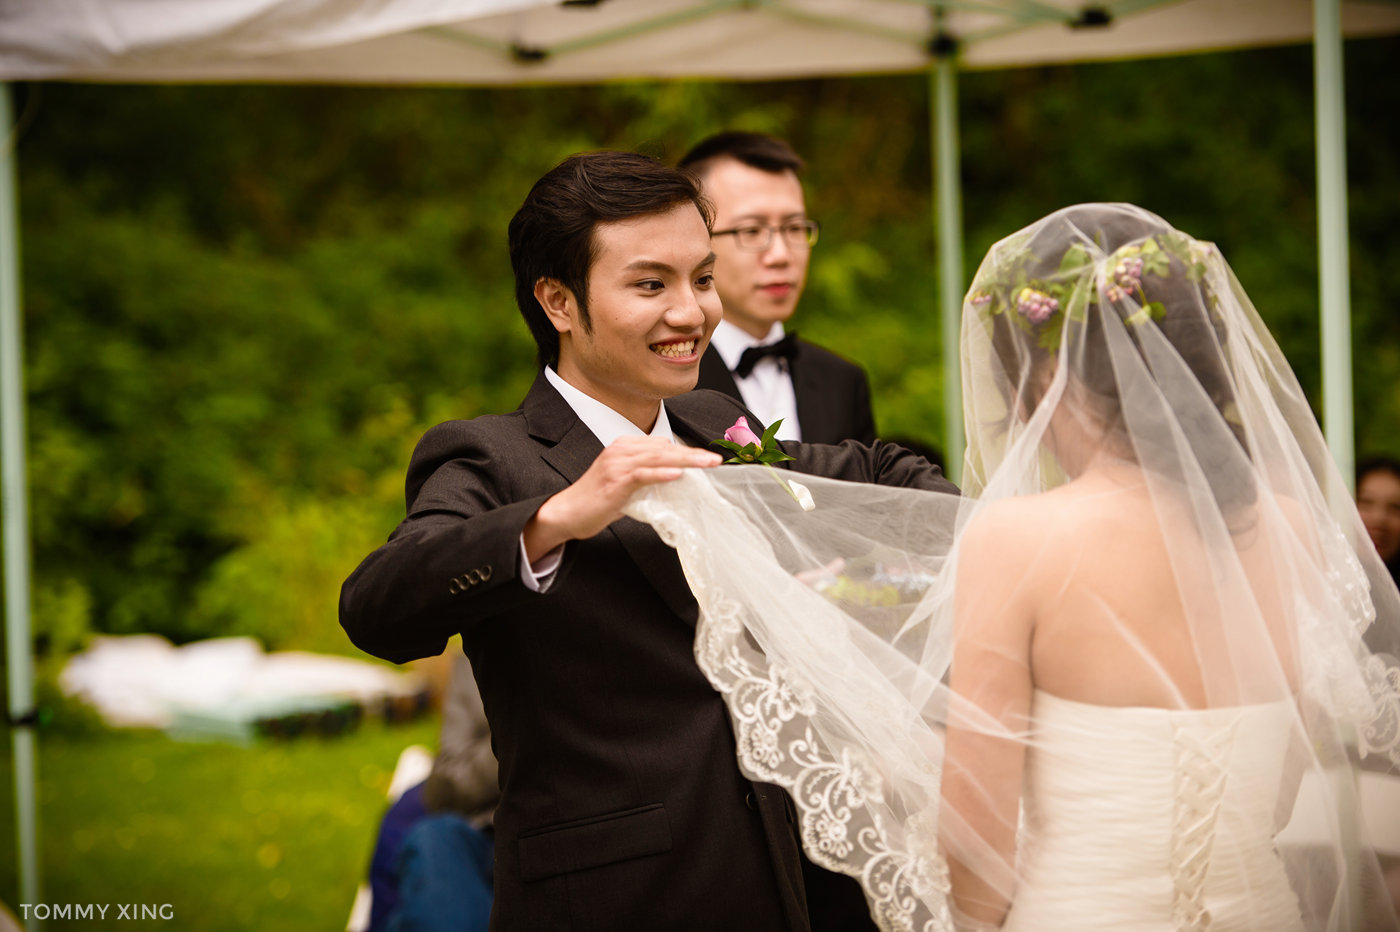 Seattle Wedding and pre wedding Los Angeles Tommy Xing Photography 西雅图洛杉矶旧金山婚礼婚纱照摄影师 091.jpg